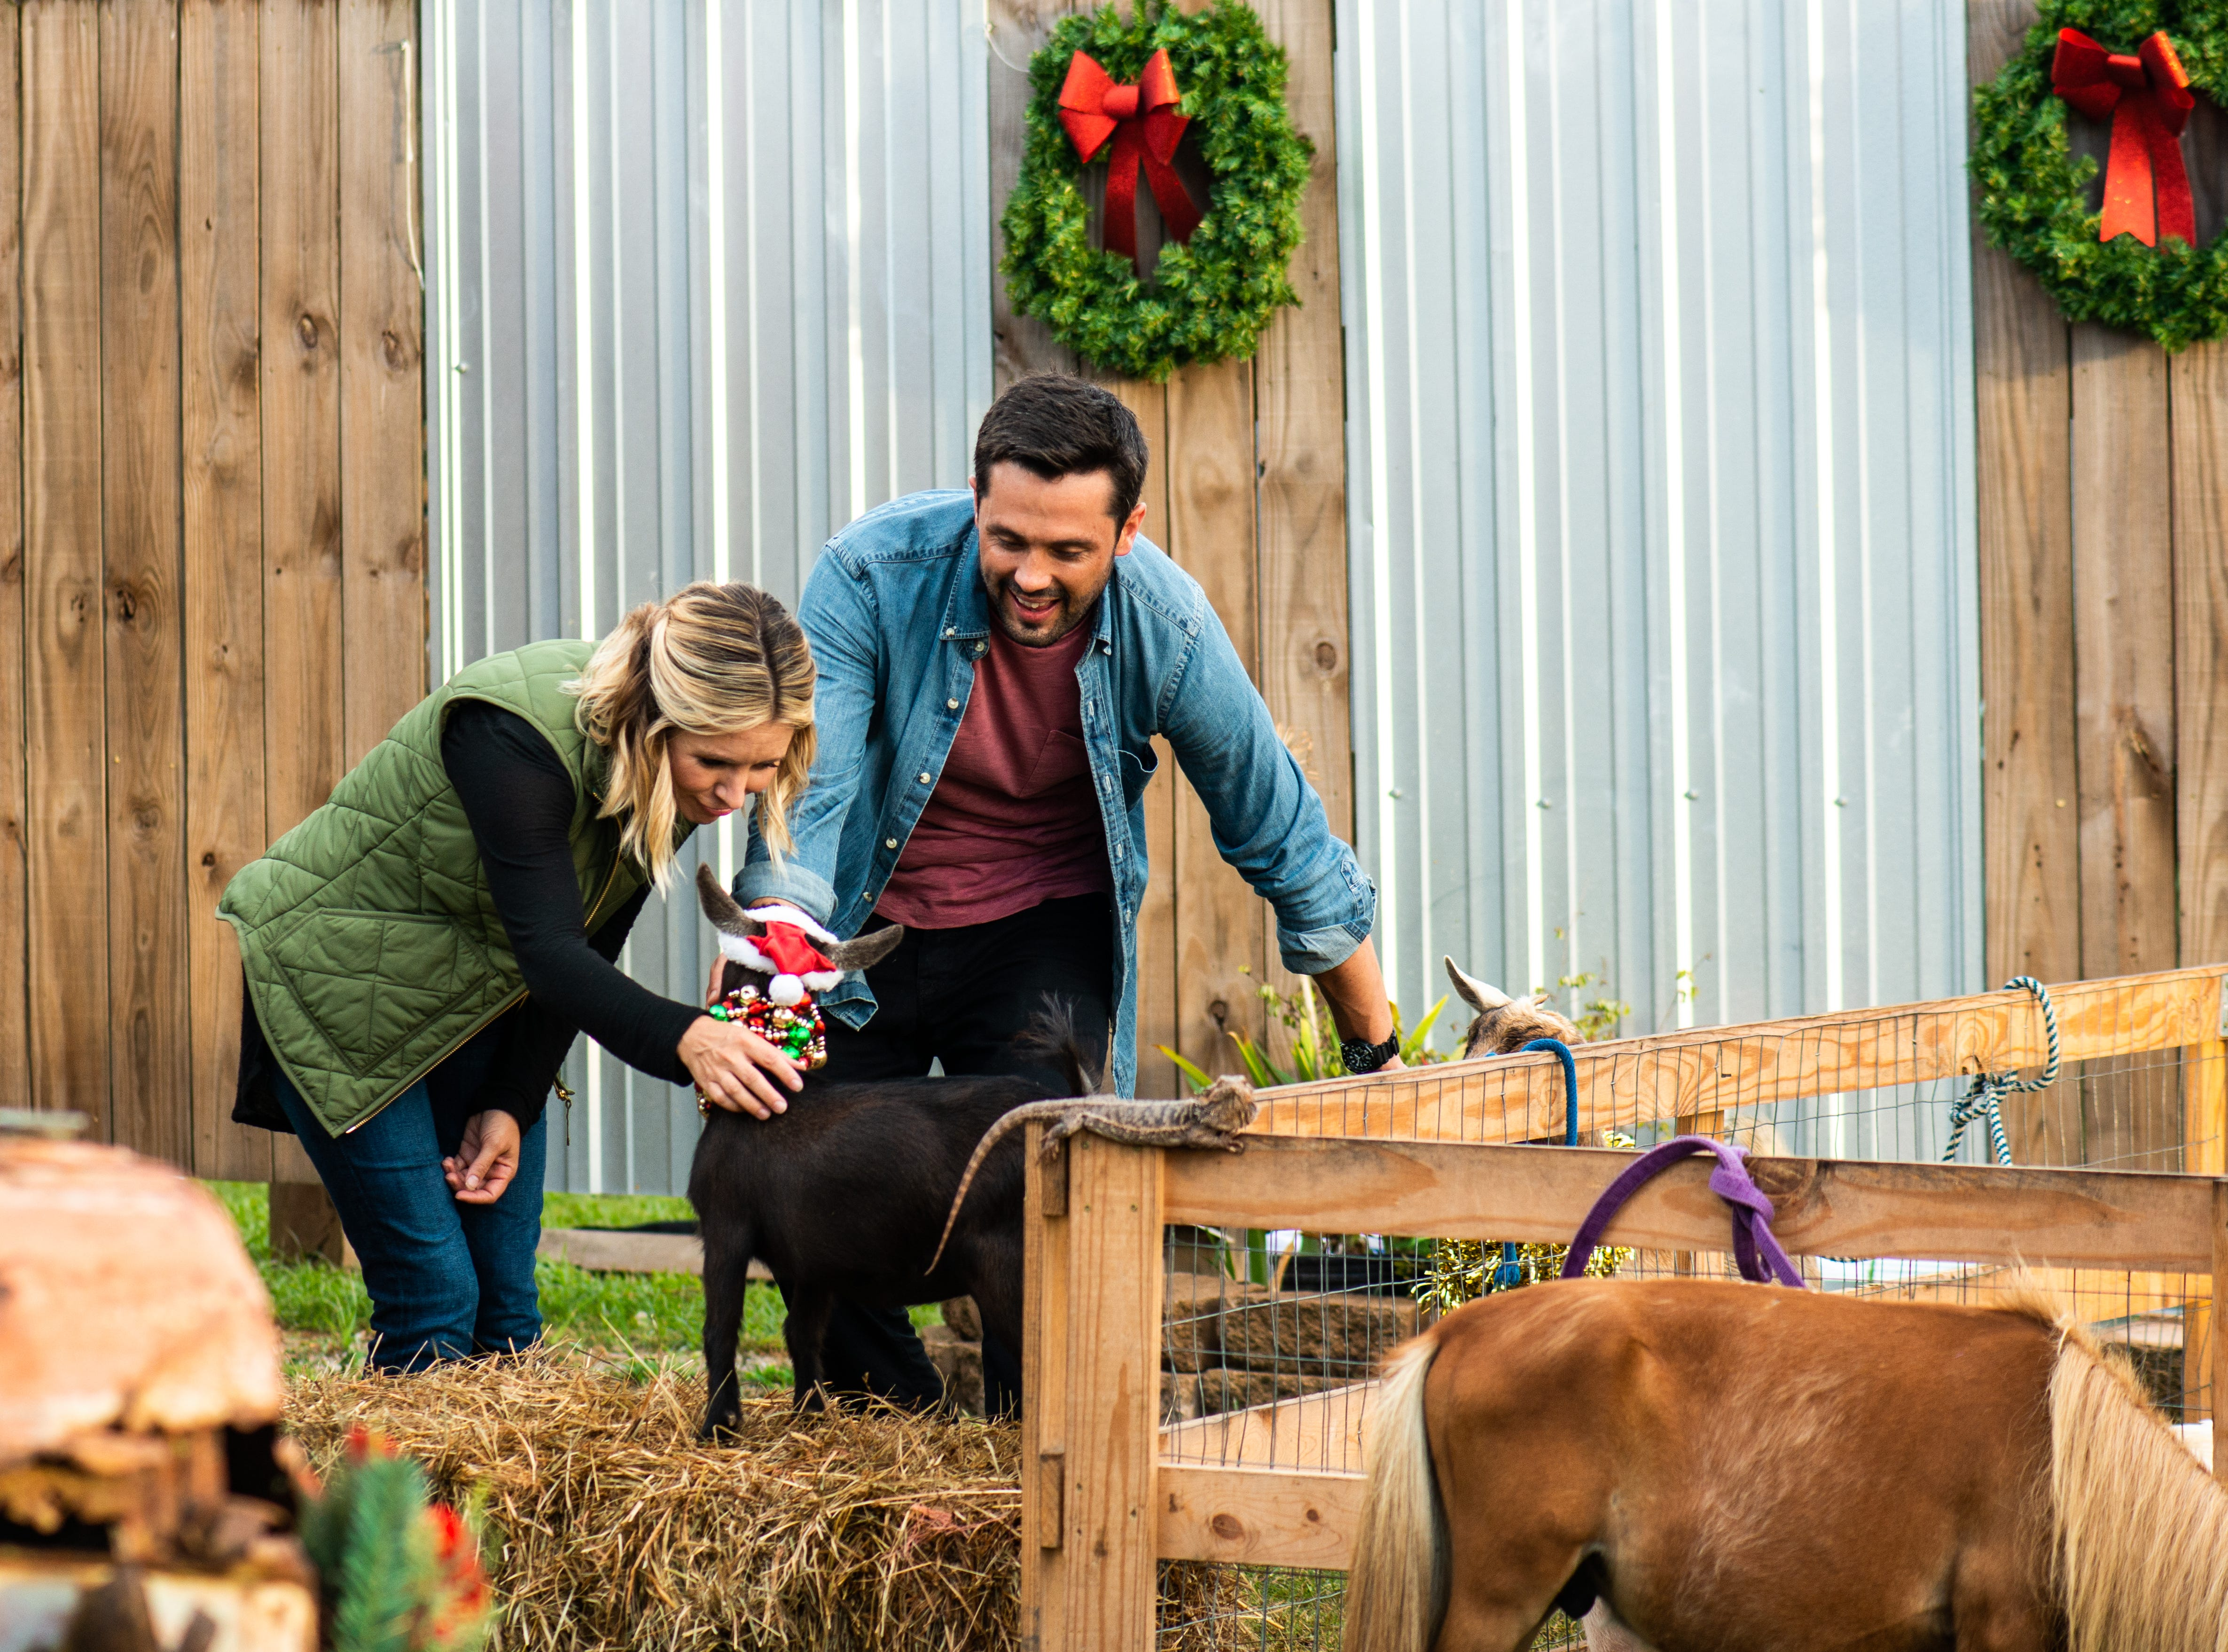 """""""Hometown Christmas"""" (Lifetime, Dec. 16, 8 EST/PST): Noelle Collins (Beverley Mitchell) returns home for Christmas where she's reunited with her high school sweetheart, Nick Russell (Stephen Colletti)."""